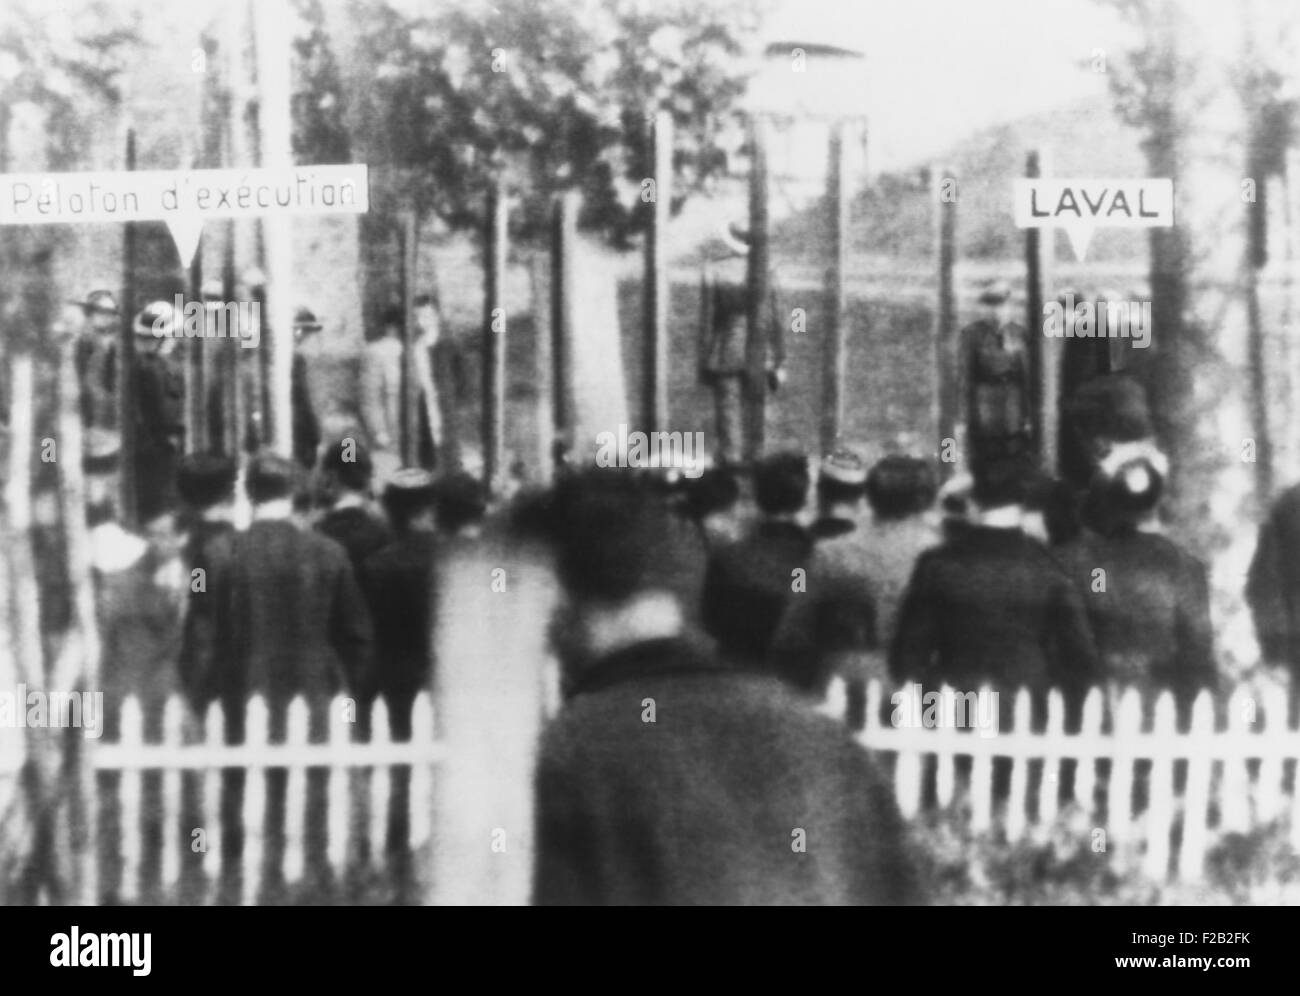 Execution of Pierre Laval on Oct. 17, 1945. The firing squad is at left, and Laval is at right, in the courtyard - Stock Image